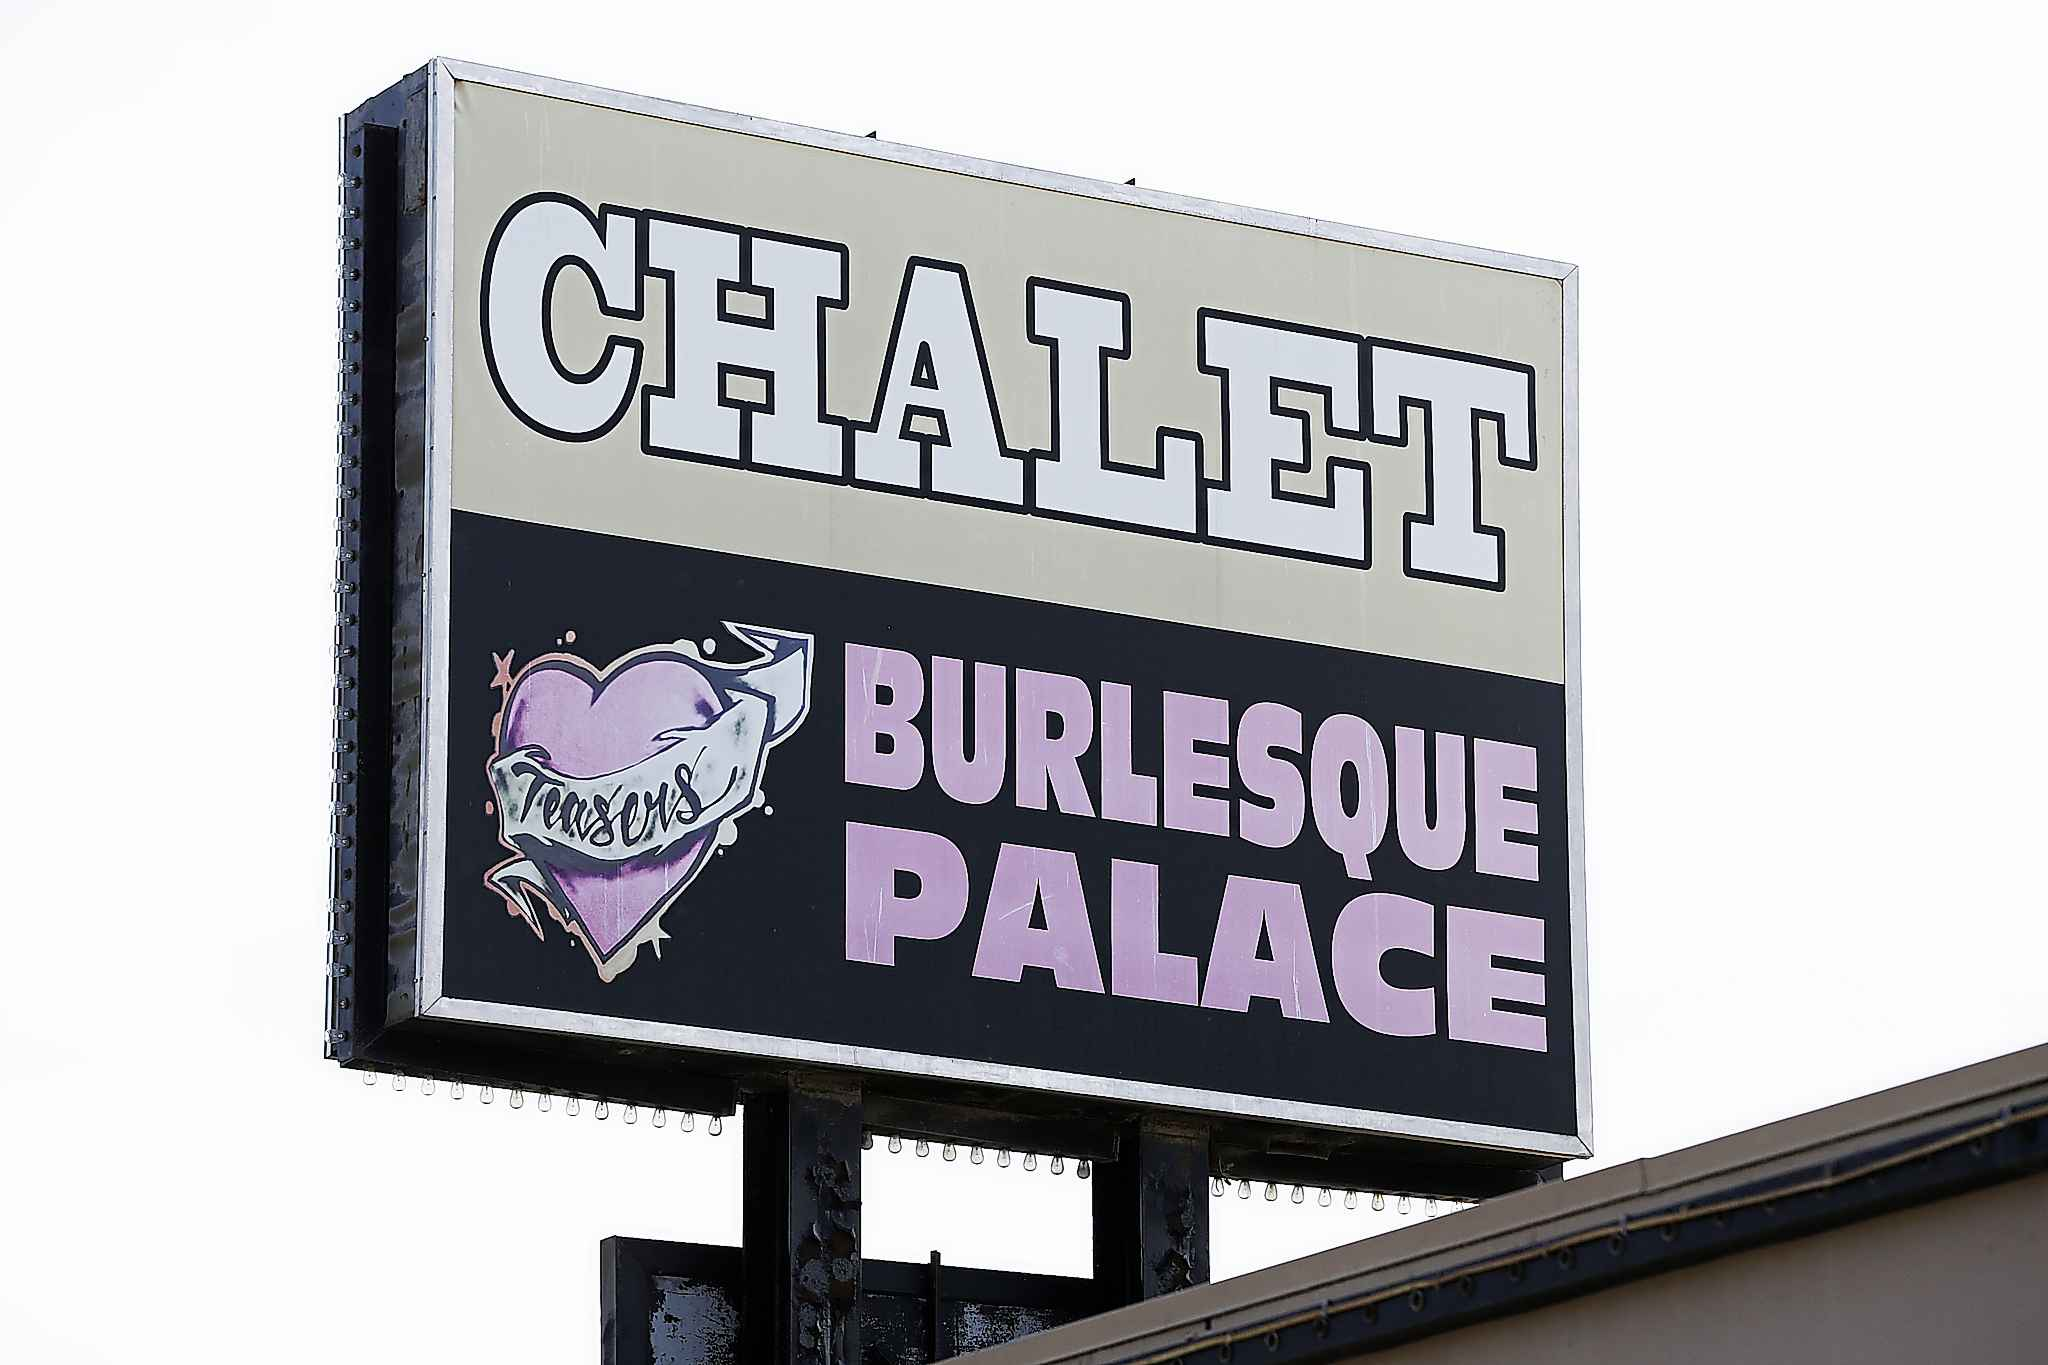 The Chalet Hotel houses Teasers Burlesque Palace.